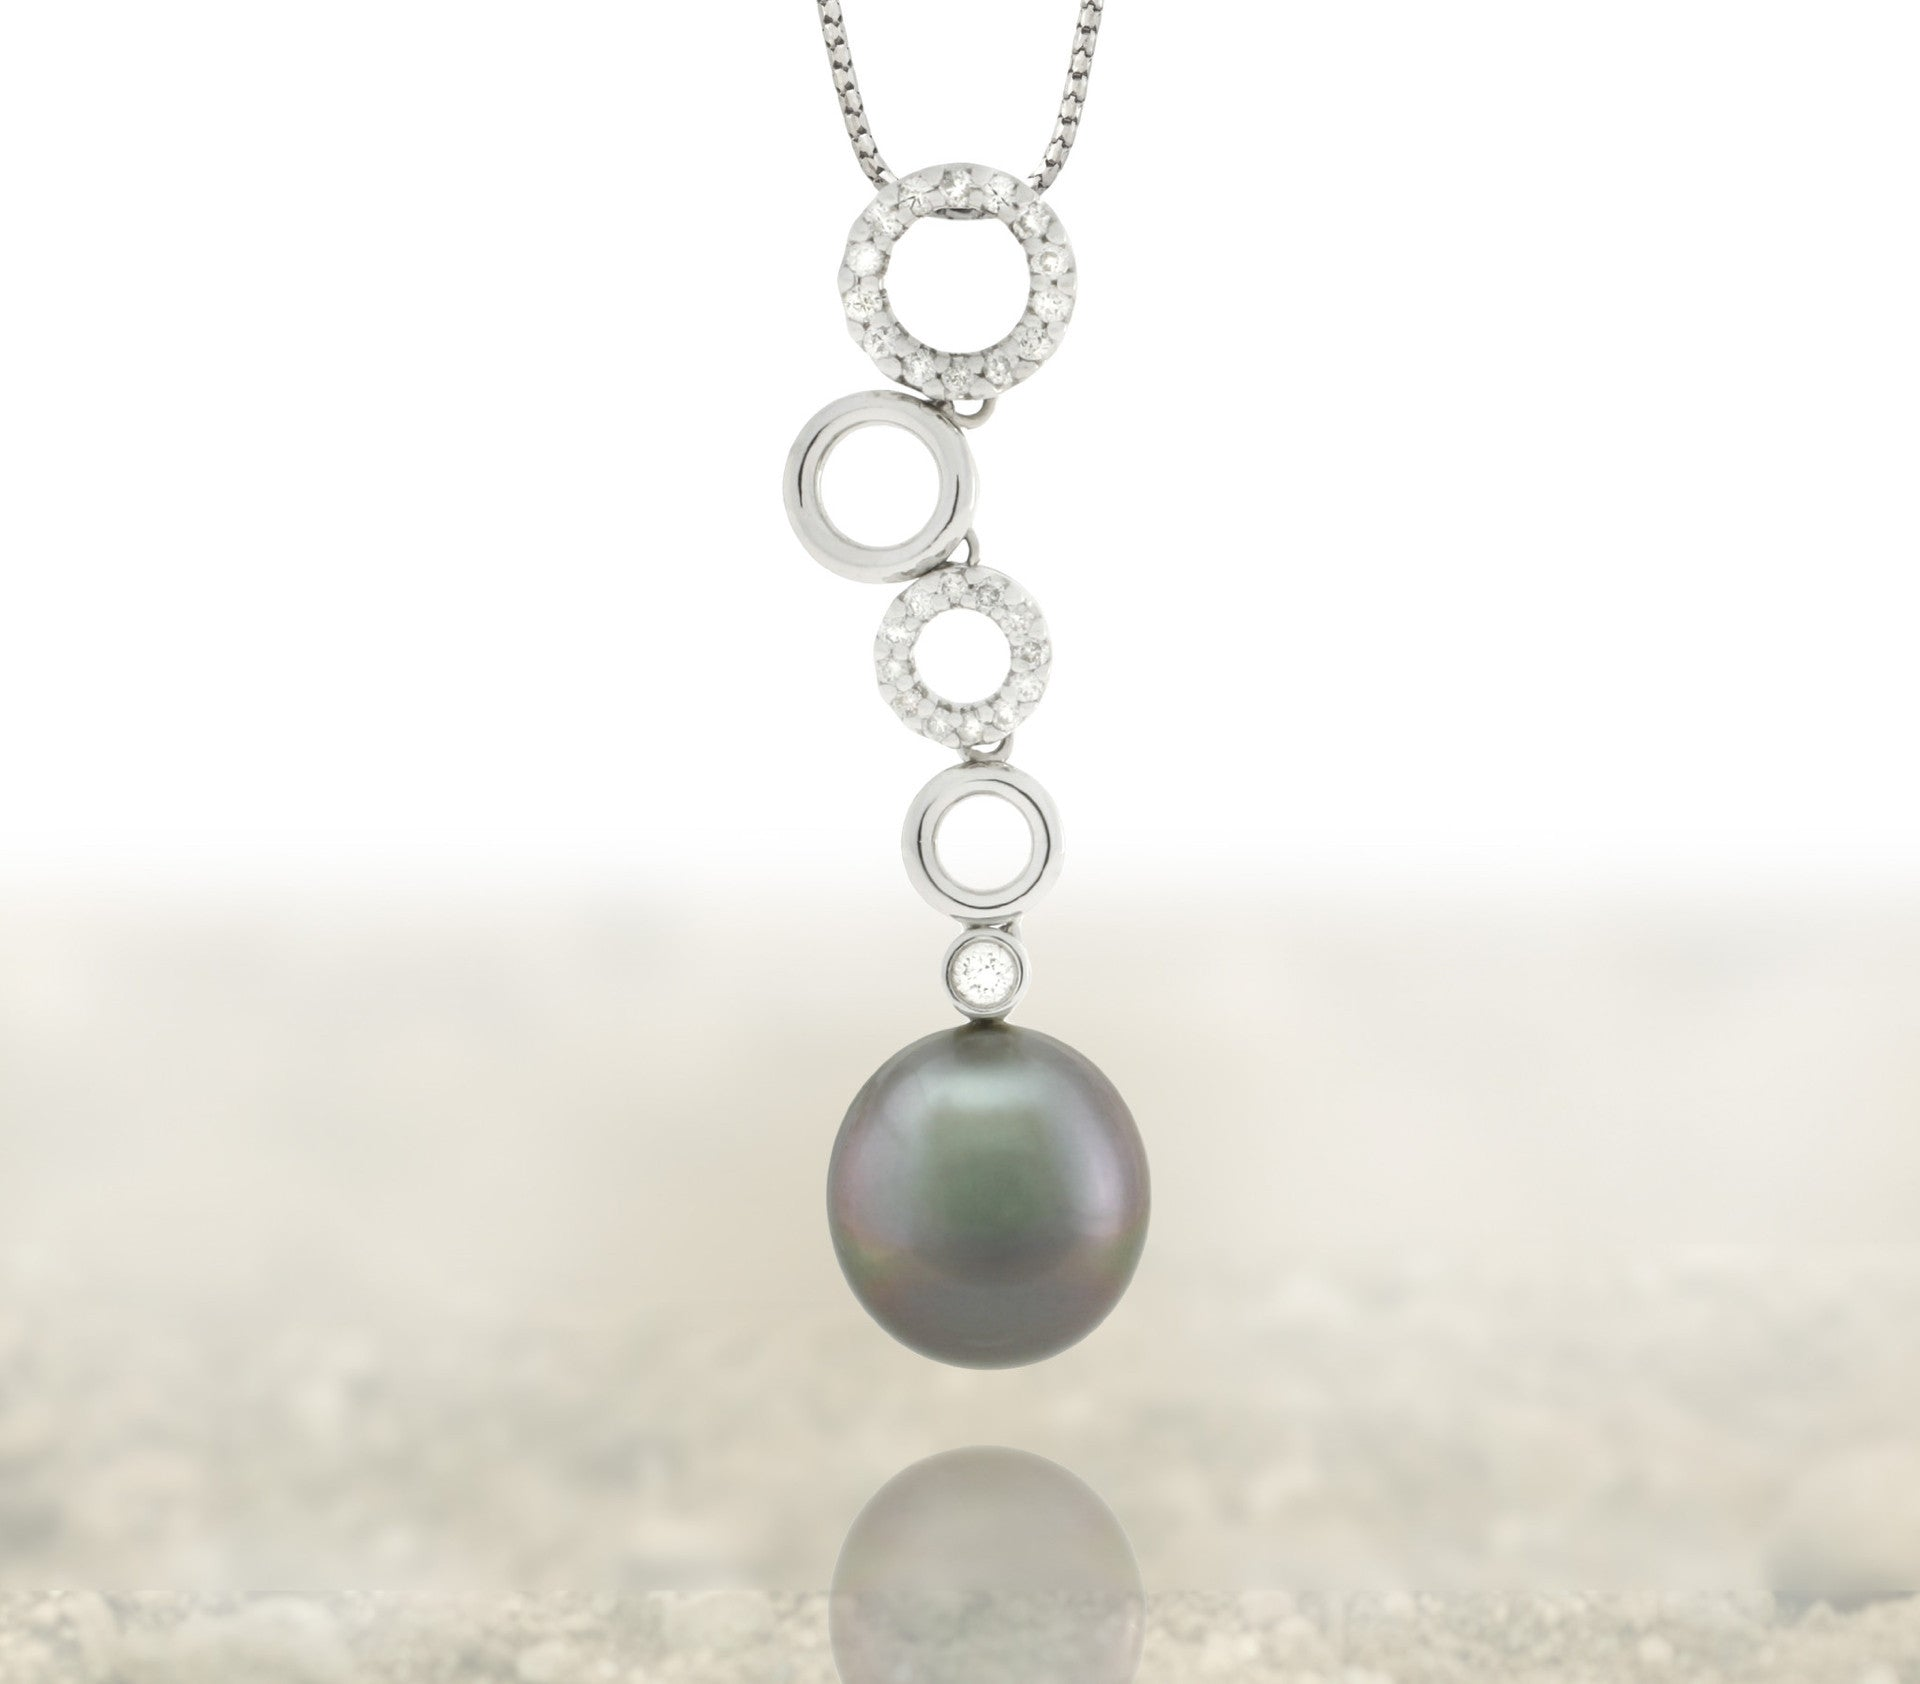 Tahitian pearl pendant 18k white gold with diamonds - Circle of Life - PEWDPE01038